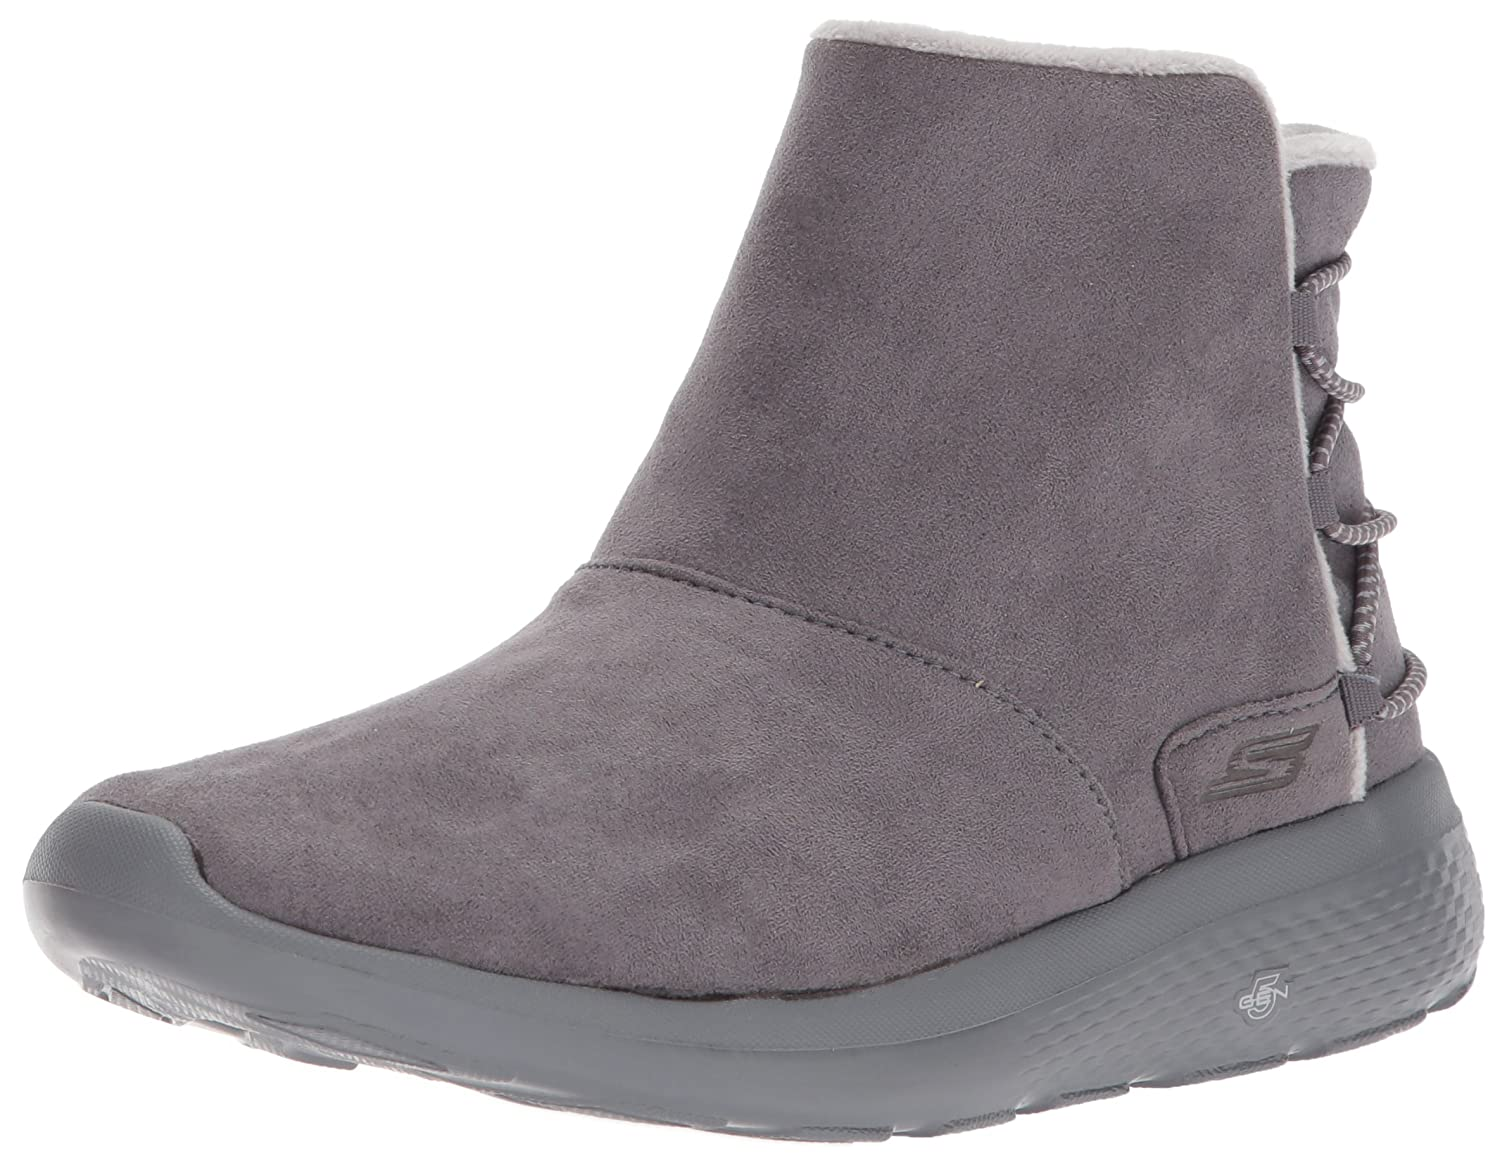 Skechers Damen Stiefeletten On-the-Go City 2 ADAPT Grau  40 EU